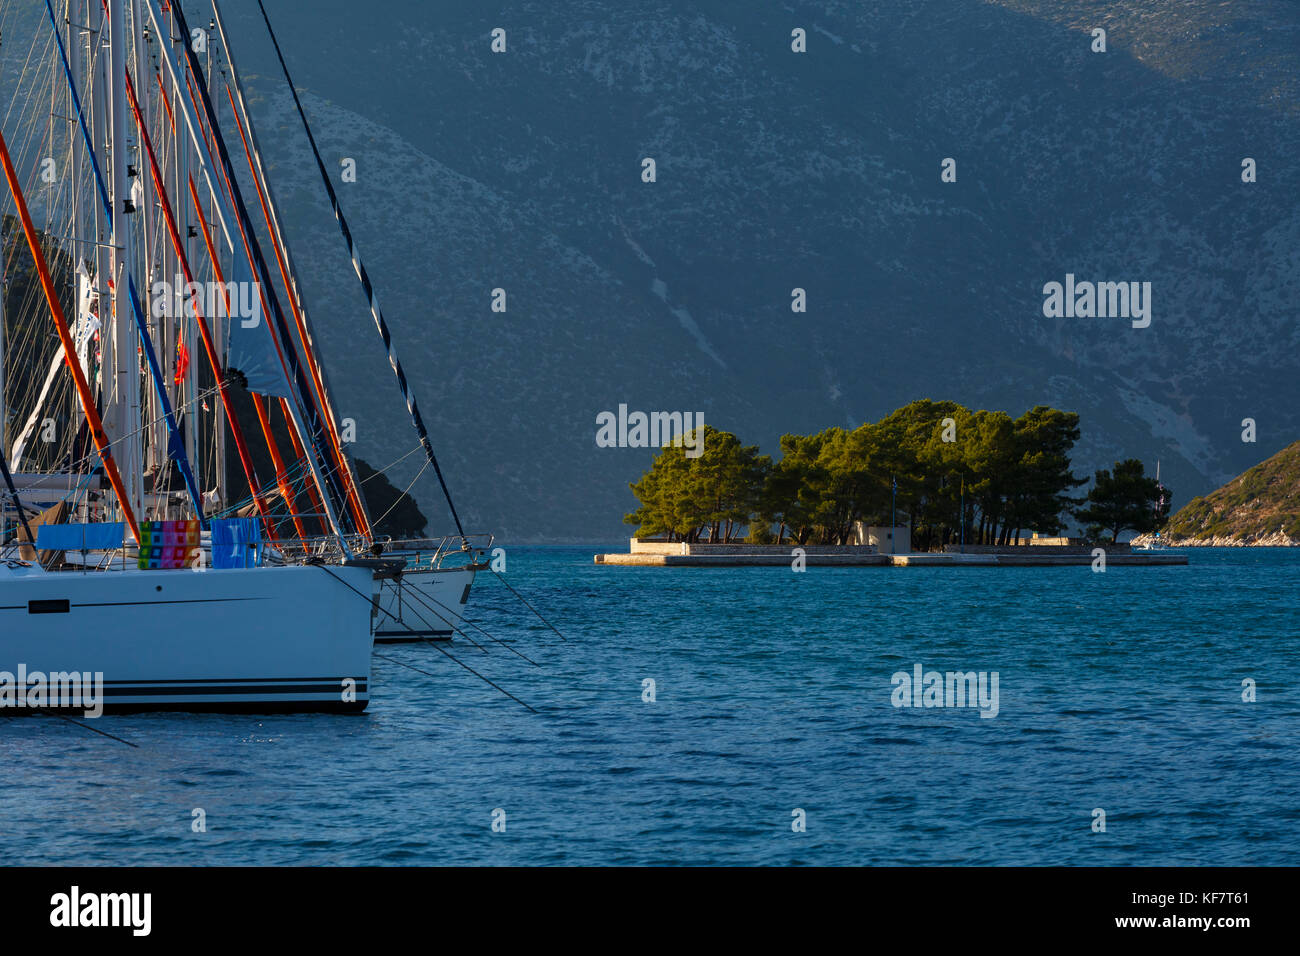 Sailboat and an islet in the Molos Gulf in Ithaca island, Greece. - Stock Image